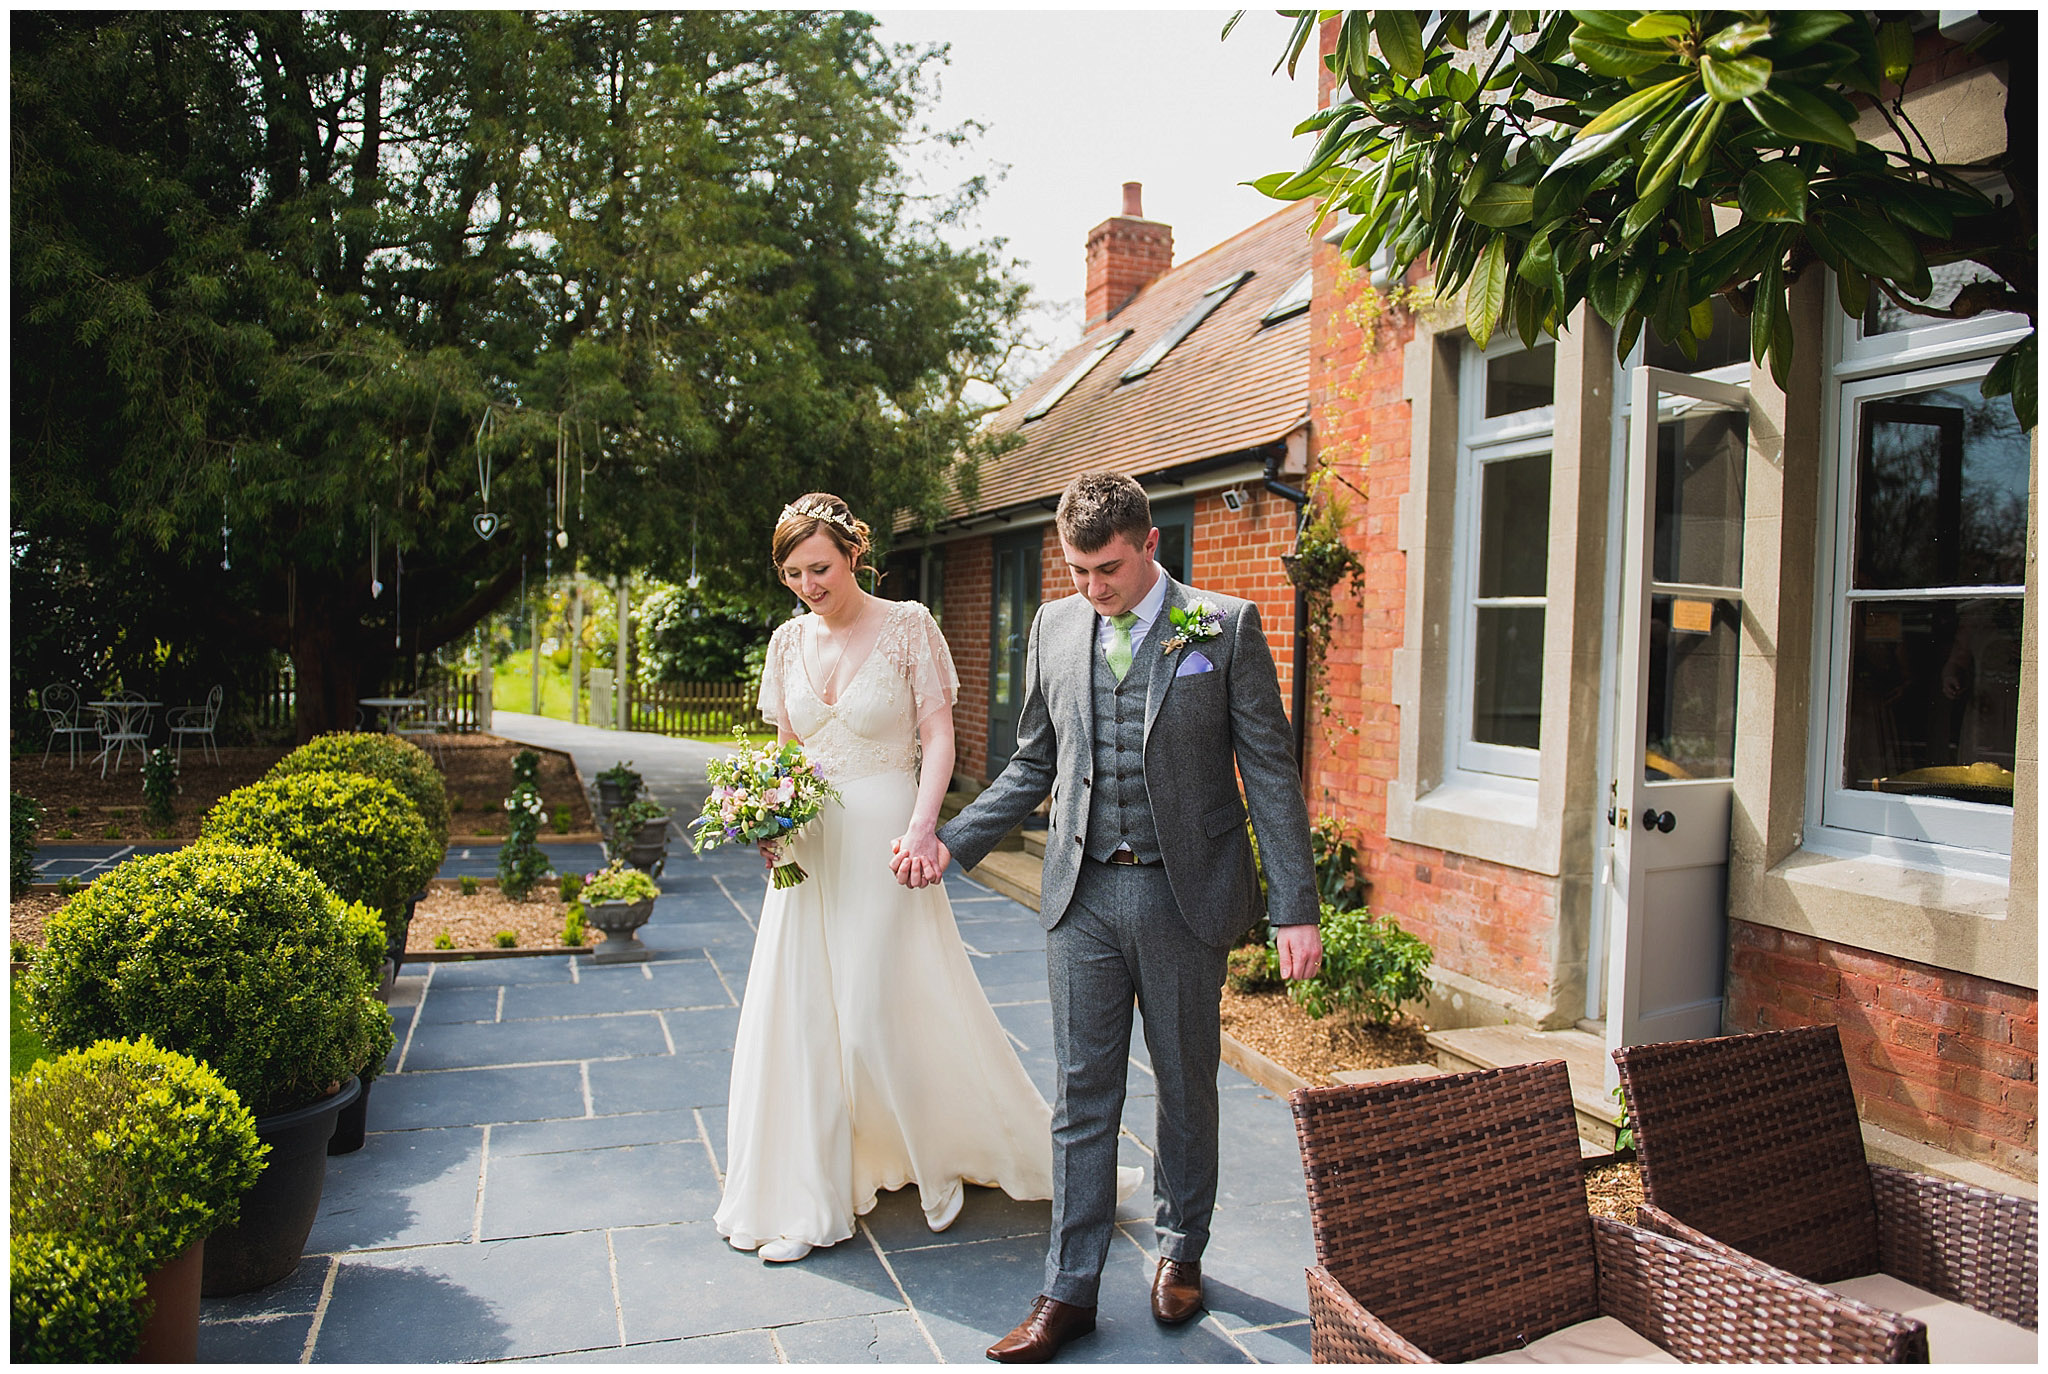 Sarah-&-Dan-The-Old-Vicarage-Wedding-Venue-Dorset-Photographer-23